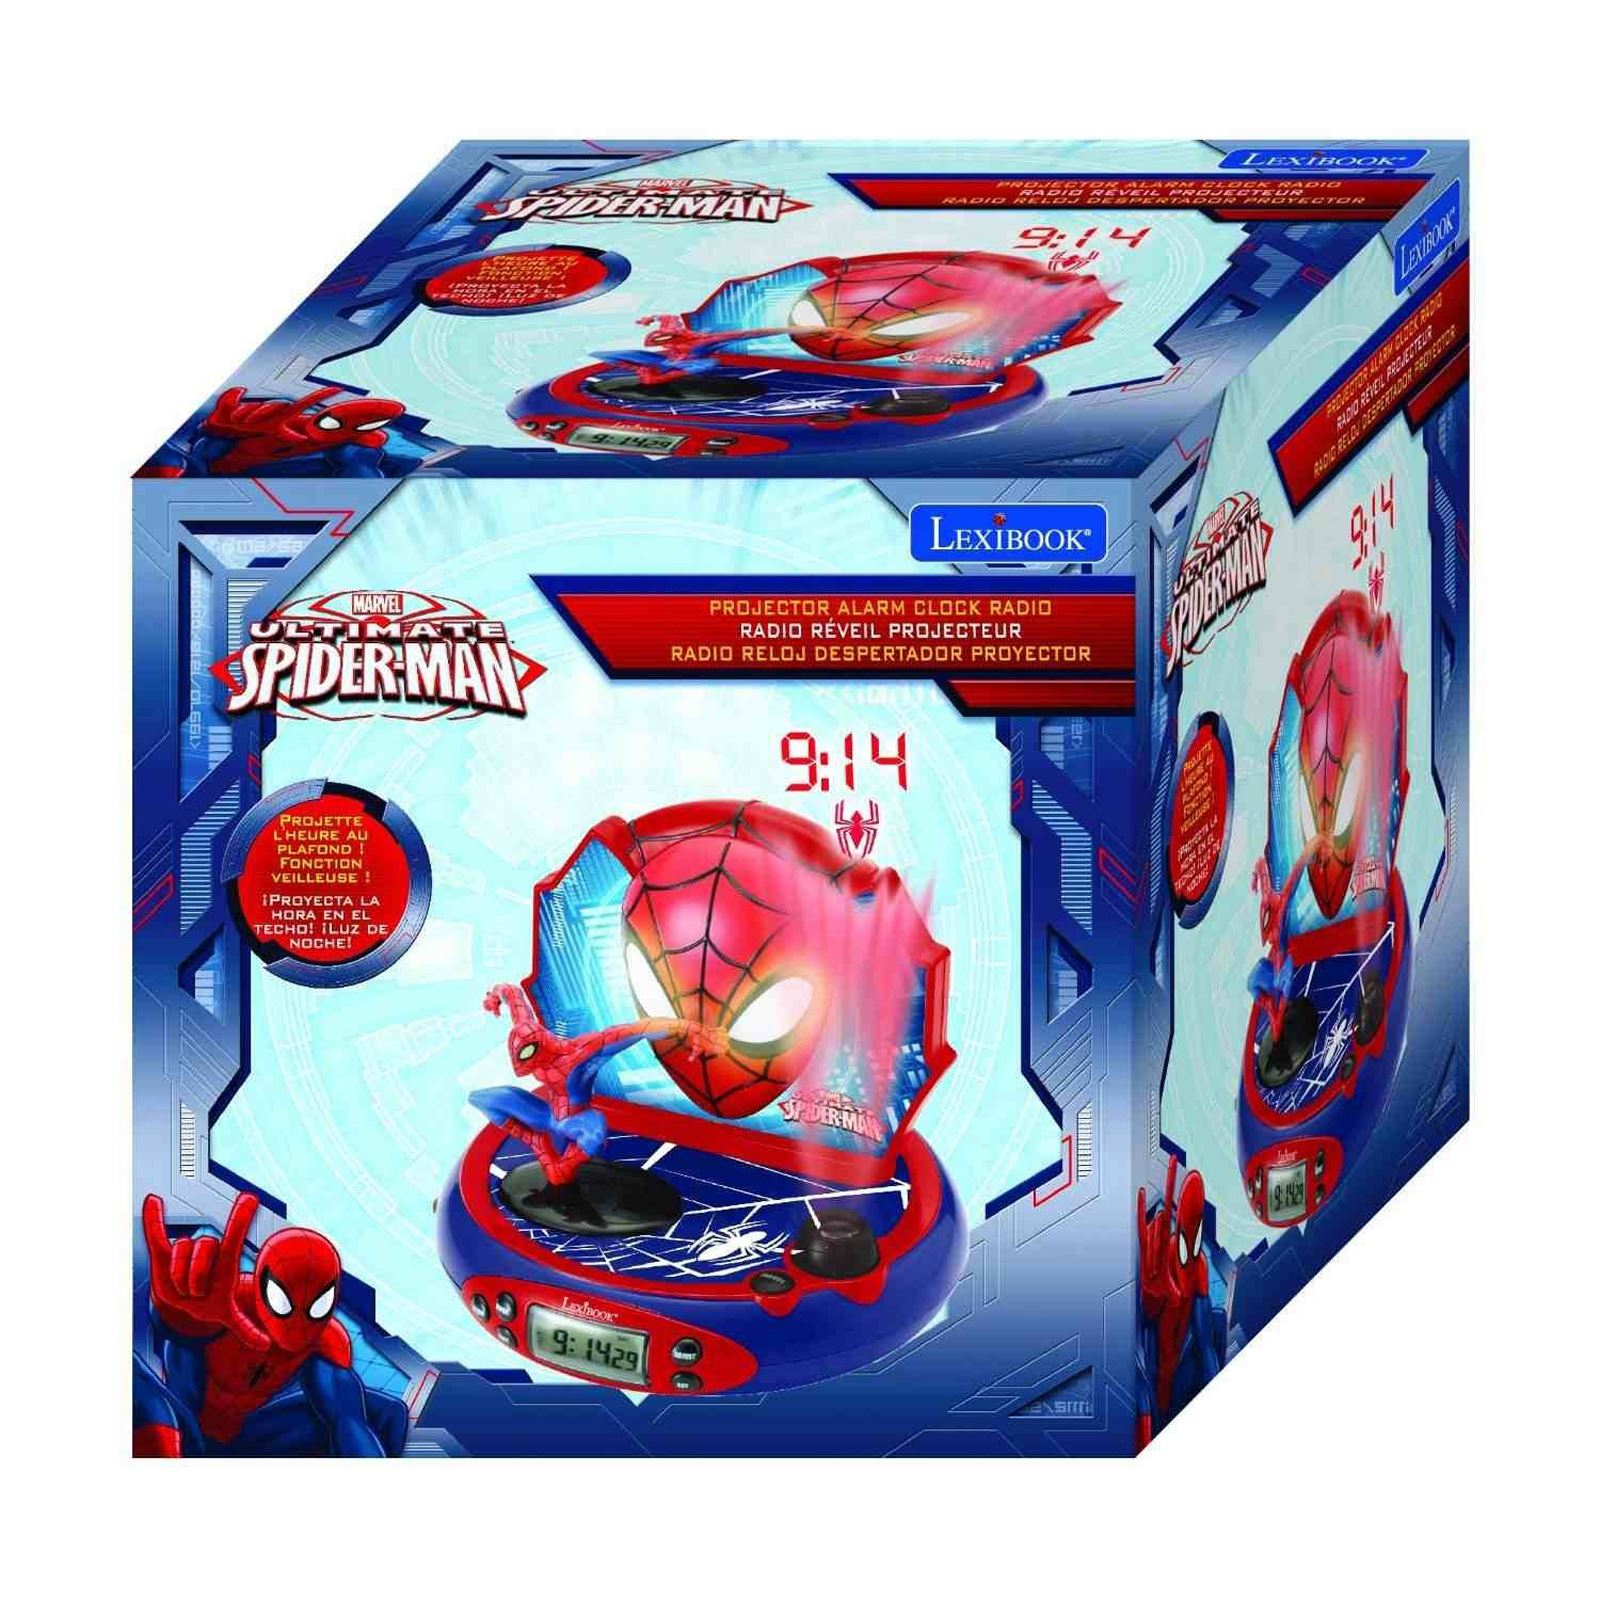 marvel ultimate spiderman projector alarm clock radio new by lexibook kids ebay. Black Bedroom Furniture Sets. Home Design Ideas